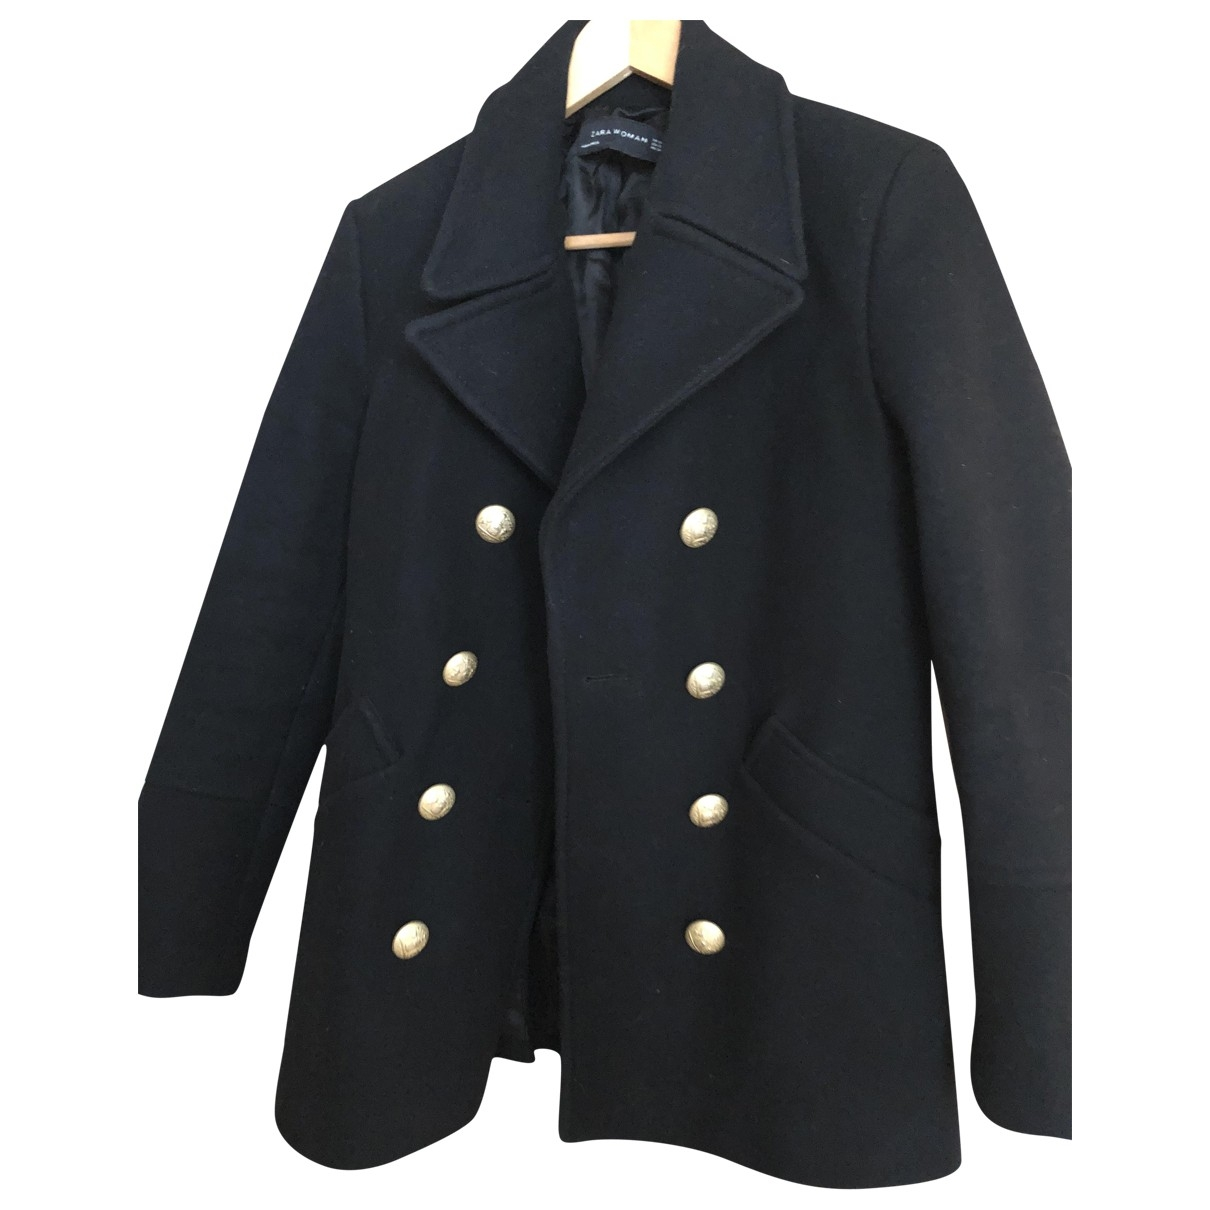 Zara \N Black Wool coat for Women XS International